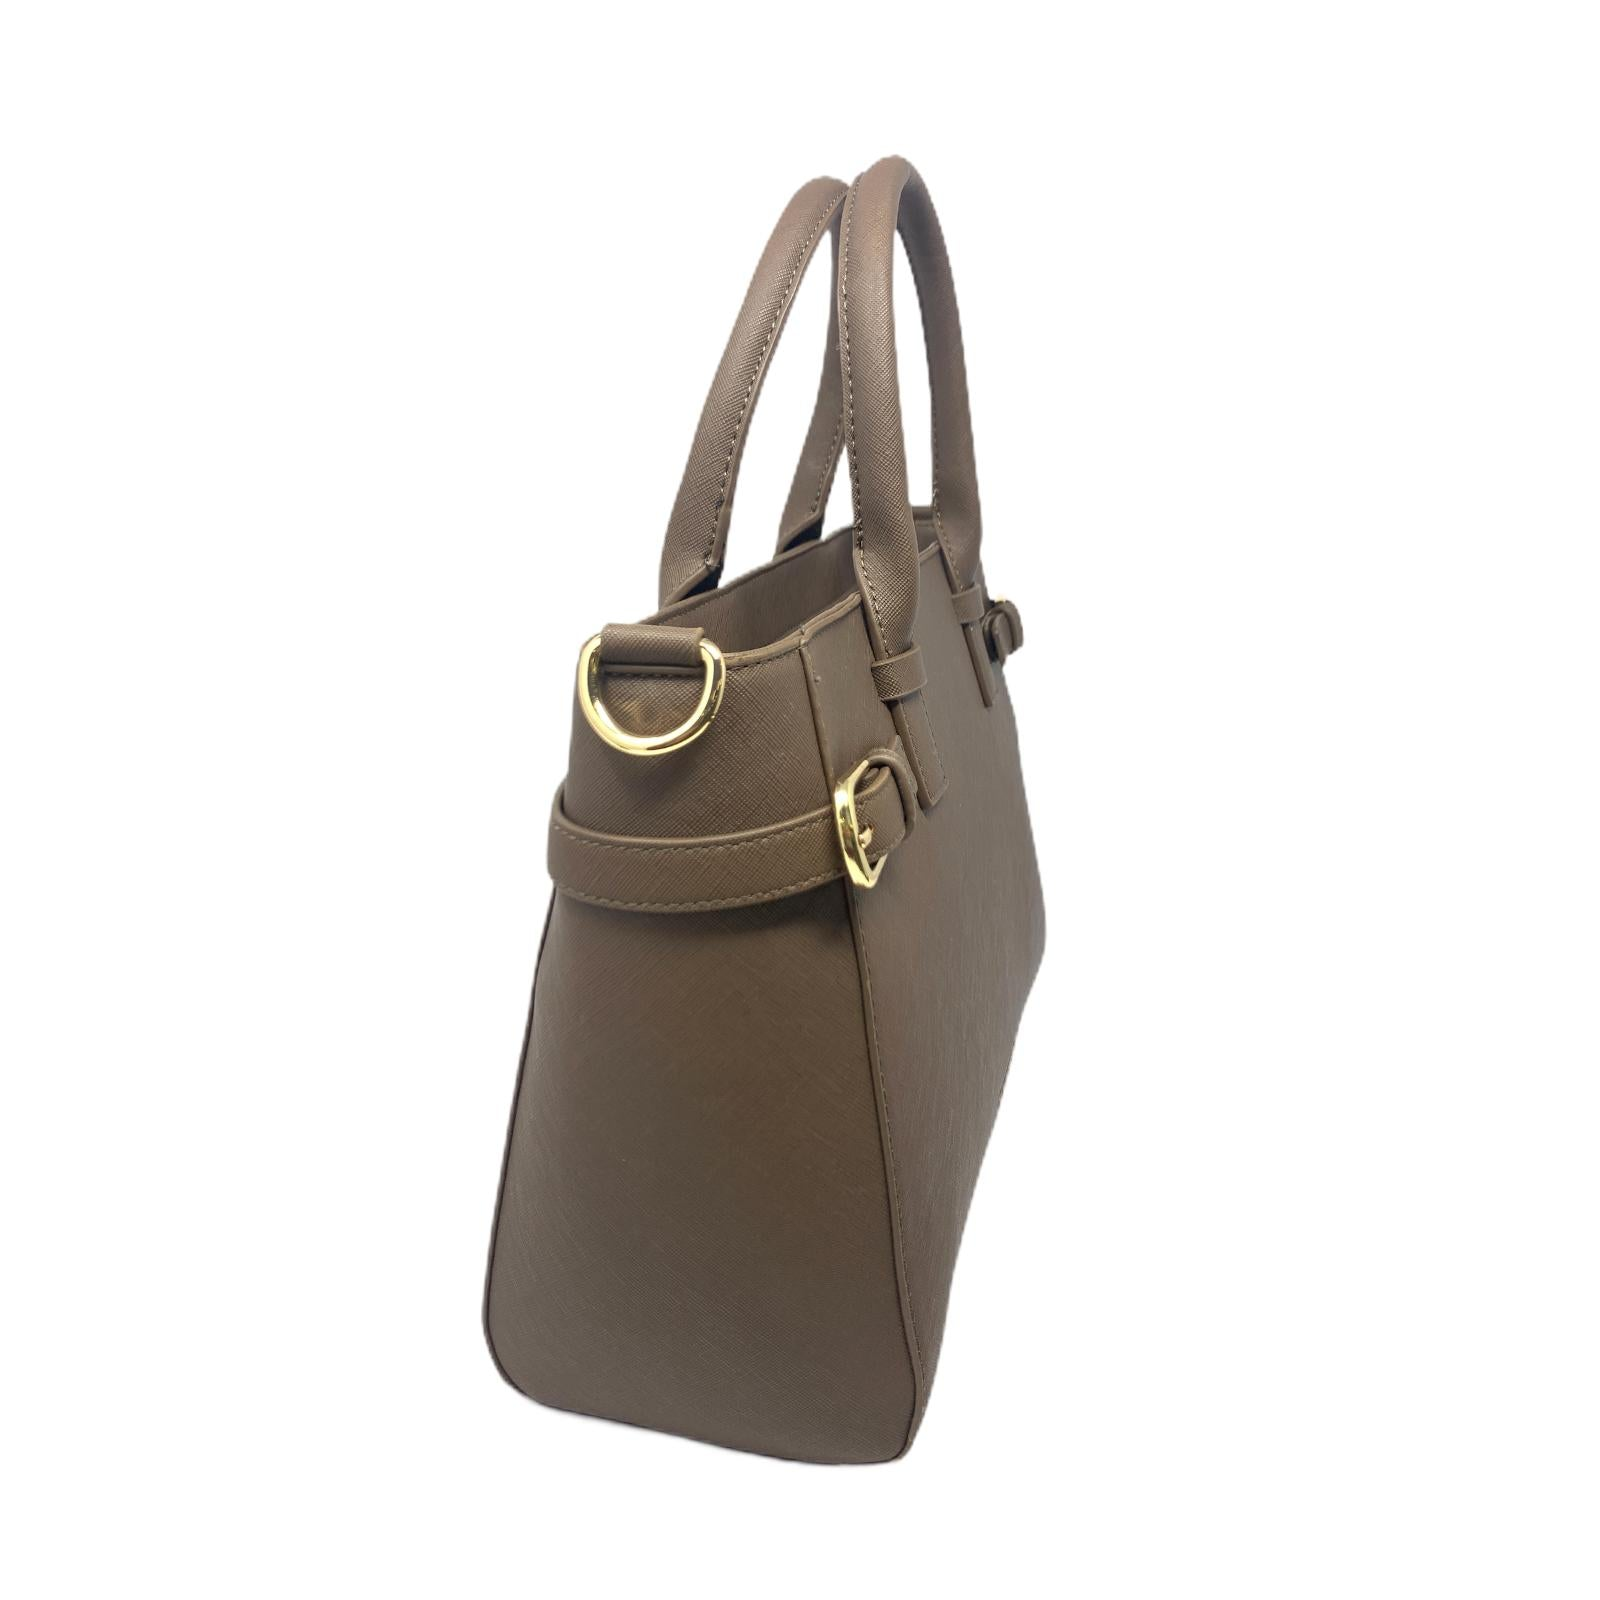 Borsa Shopper Bag Tru Trussardi Borsa a Mano Marrone Bag